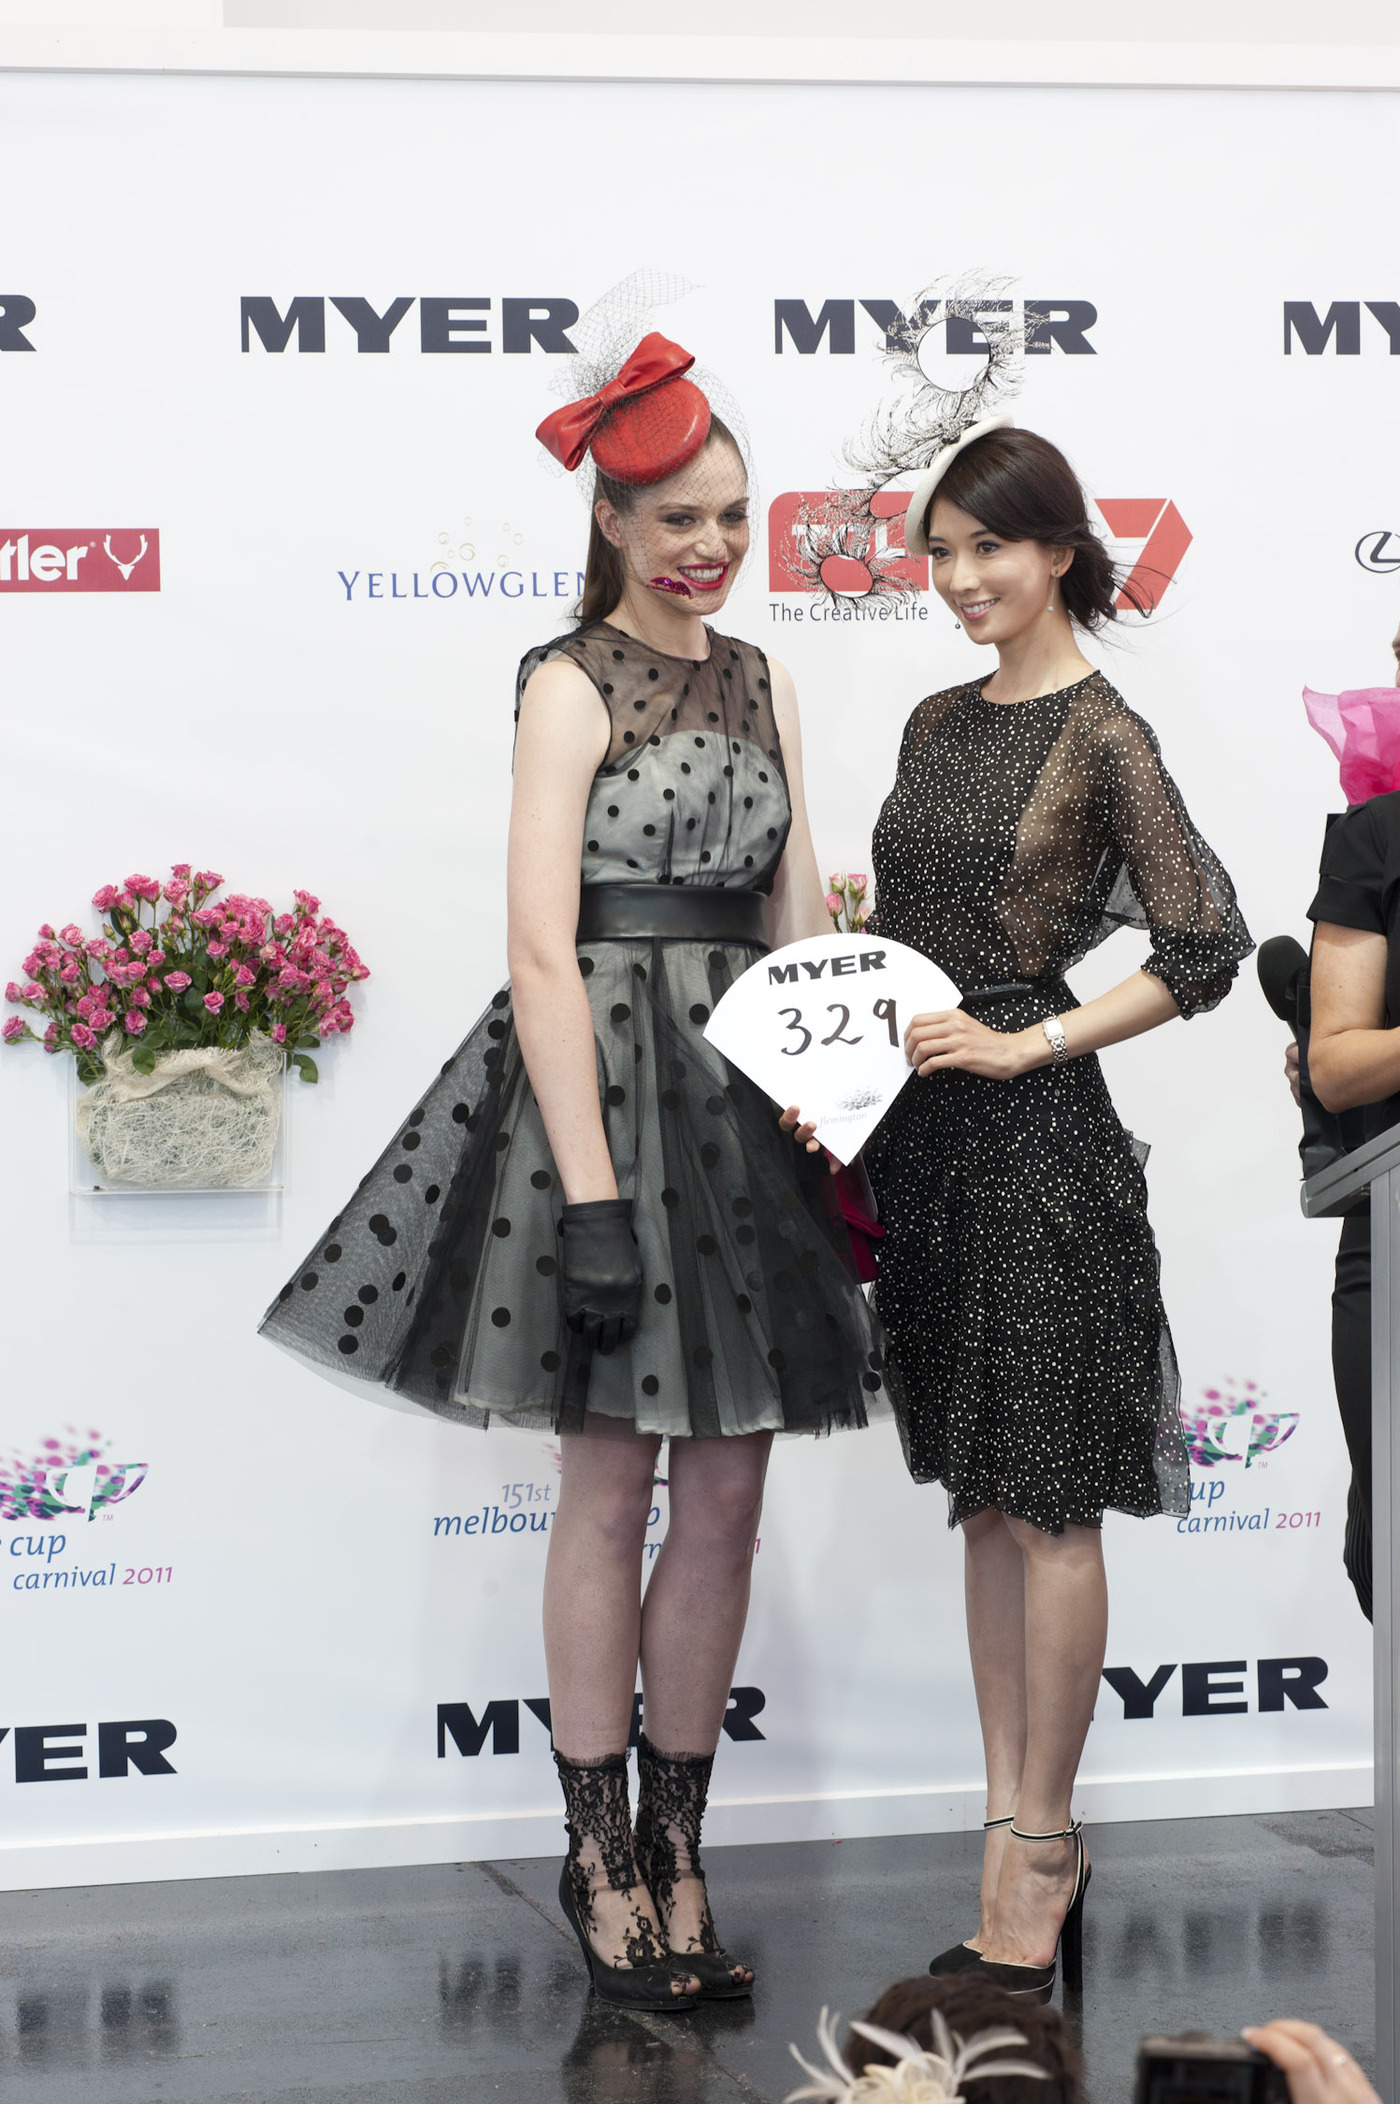 Longines Flat Racing Event: Elegance reigns at Derby Day as part of 2011 Melbourne Cup Carnival 4